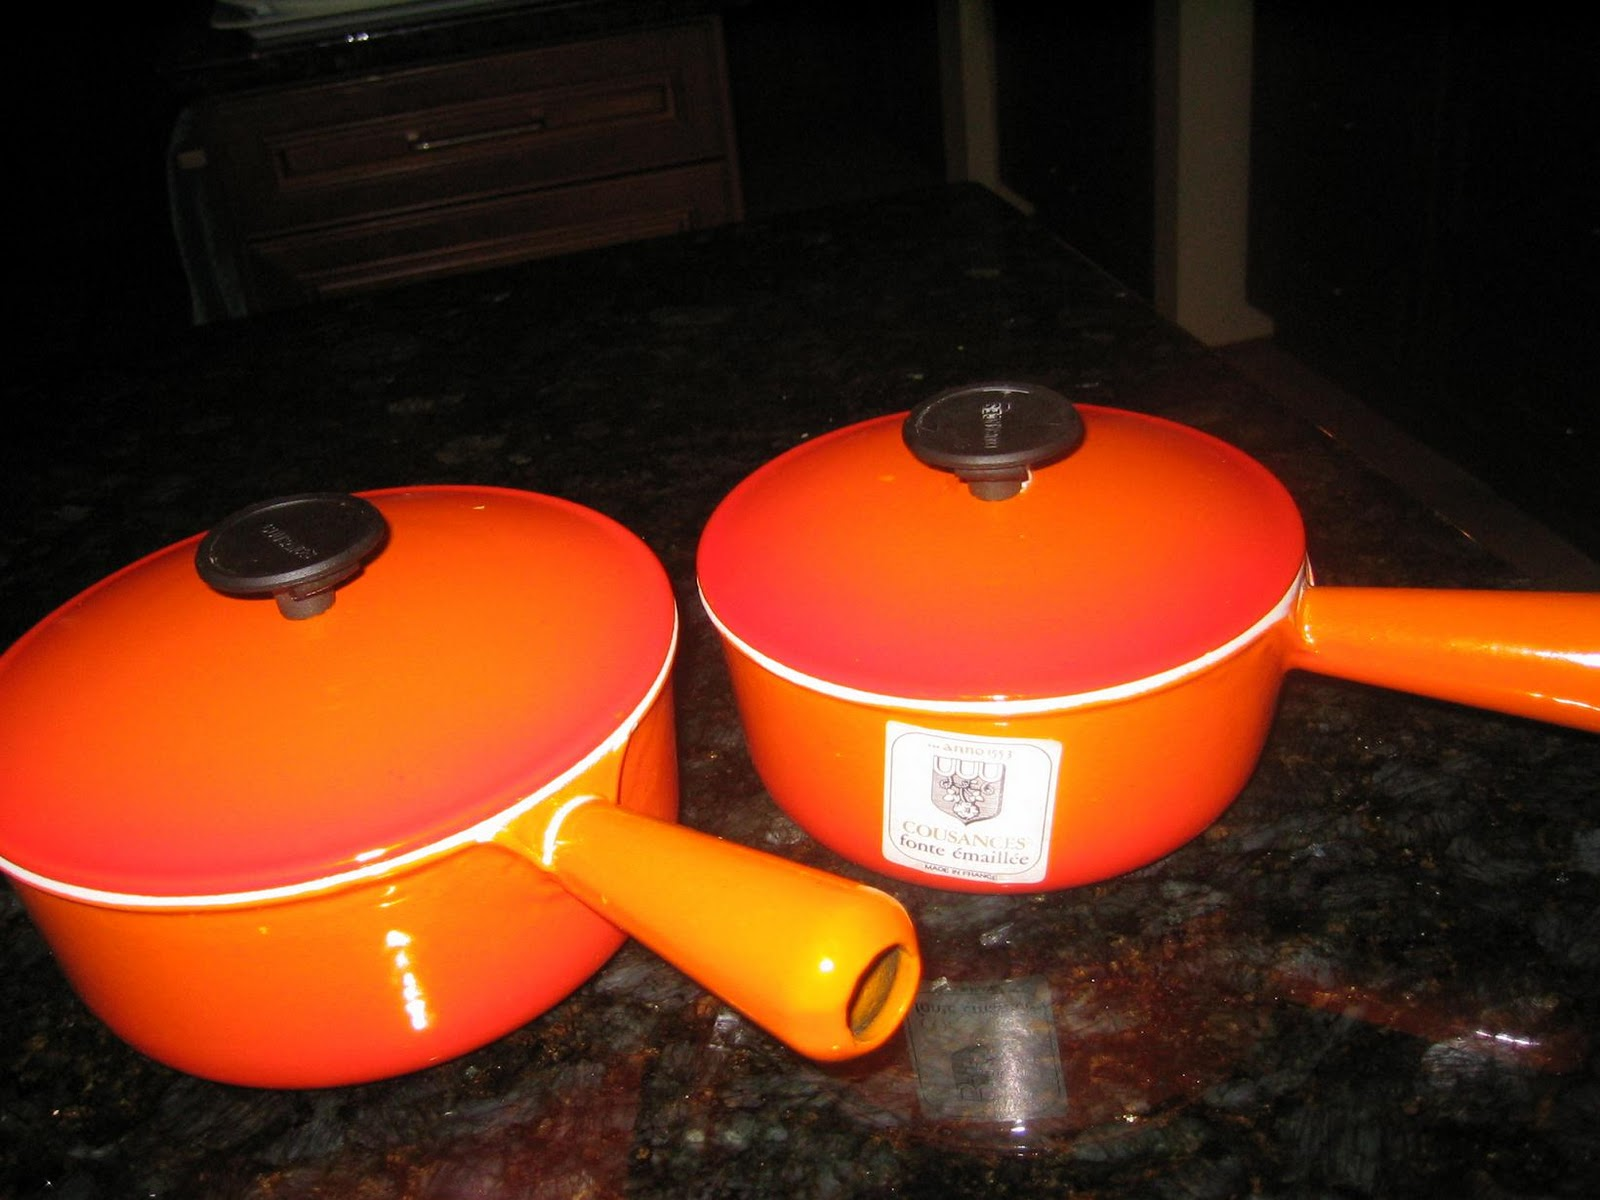 That interfere, Vintage 29 france le creuset